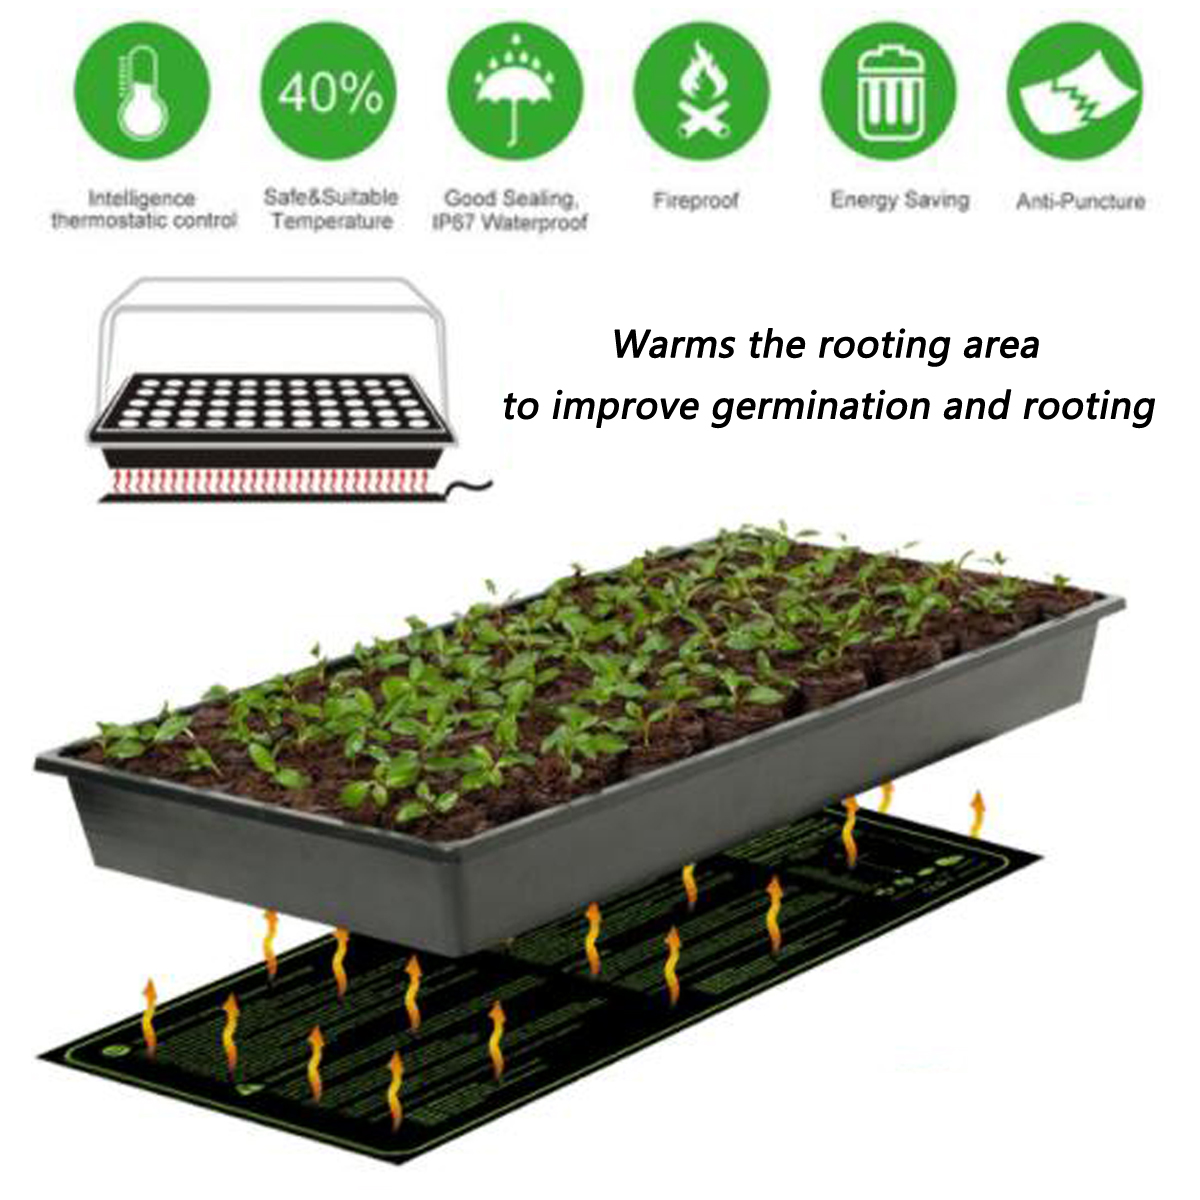 Garden 20 x10 Inch Seedling Heating Pads Germination Propagation Clone Reptile Starter Warm Mat